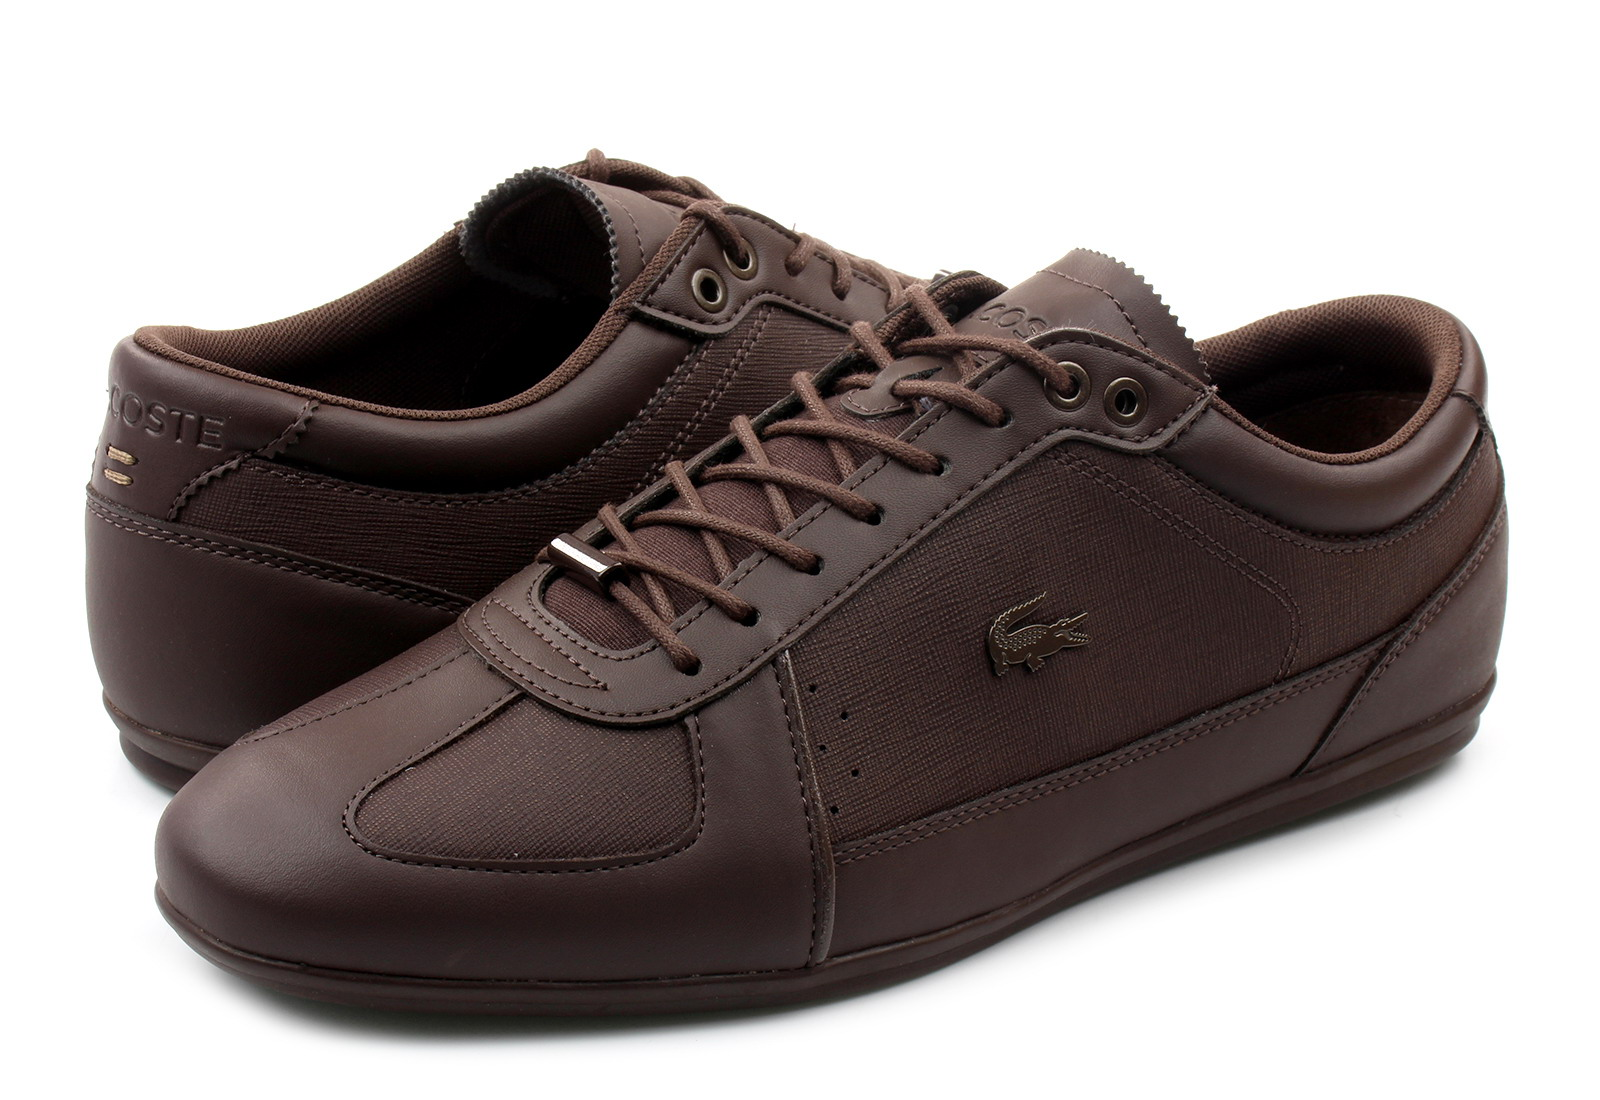 e26e00fda4 Lacoste Shoes - Evara - 183CAM0023-DB2 - Online shop for sneakers, shoes  and boots